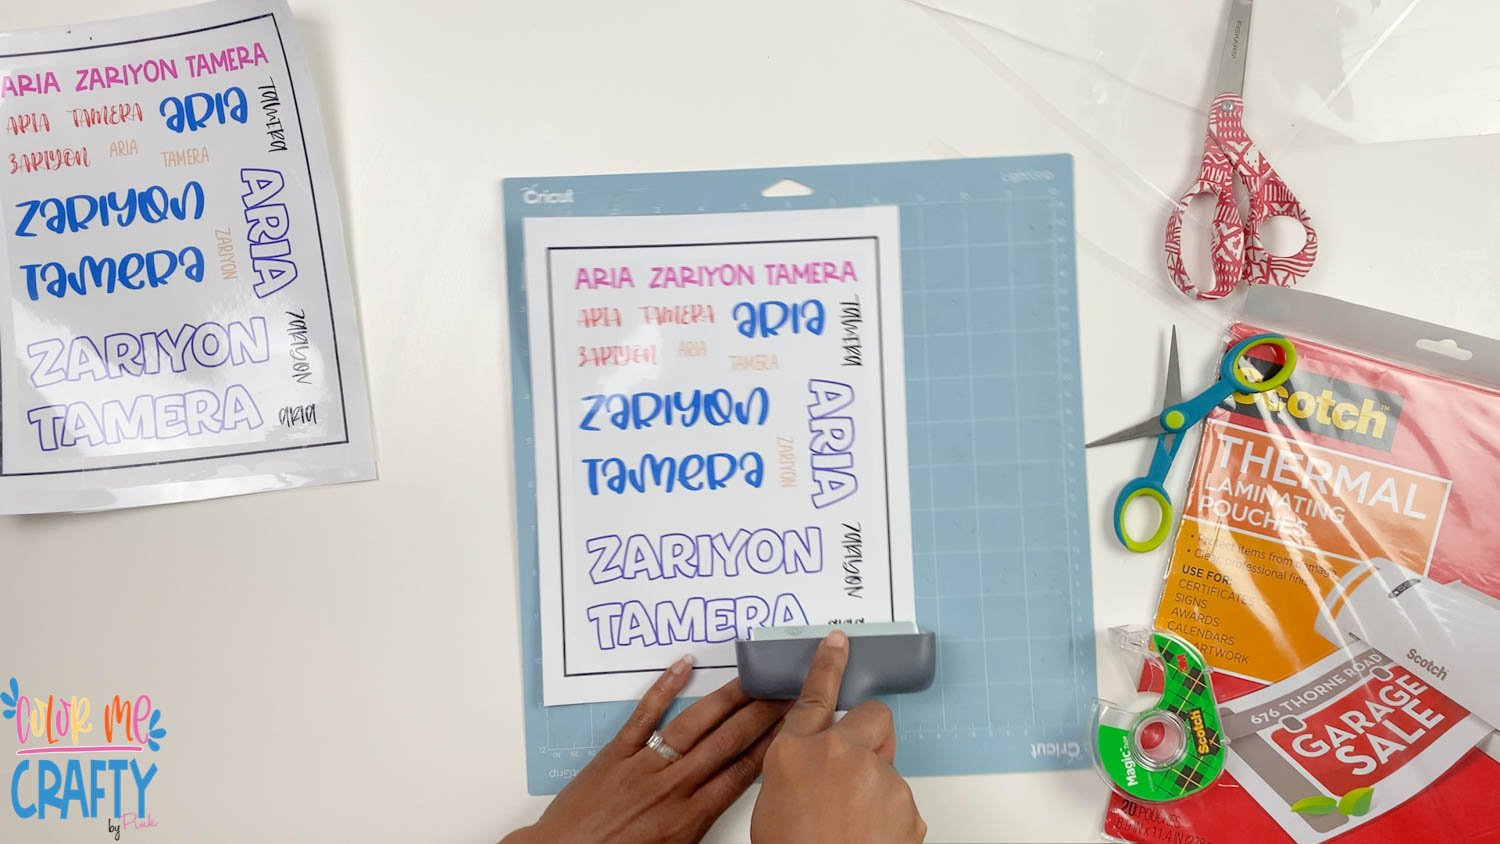 Place the sticker sheet onto the blue sticky mat. Use the brayer tool to secure